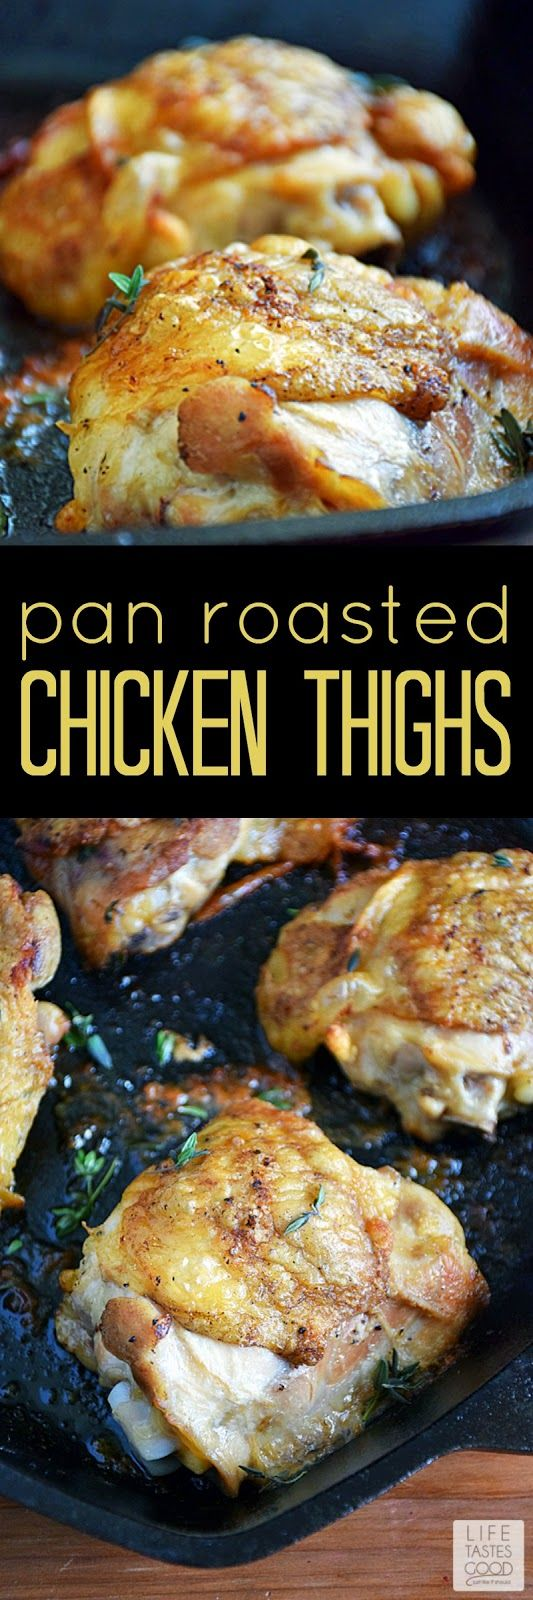 Pan Roasted Chicken Thighs   by Life Tastes Good make a simple dinner for any night of the week, but perfect for company too! They are budget-friendly, taste great, and easy to make! It doesn't get much better than this for an easy dinner!